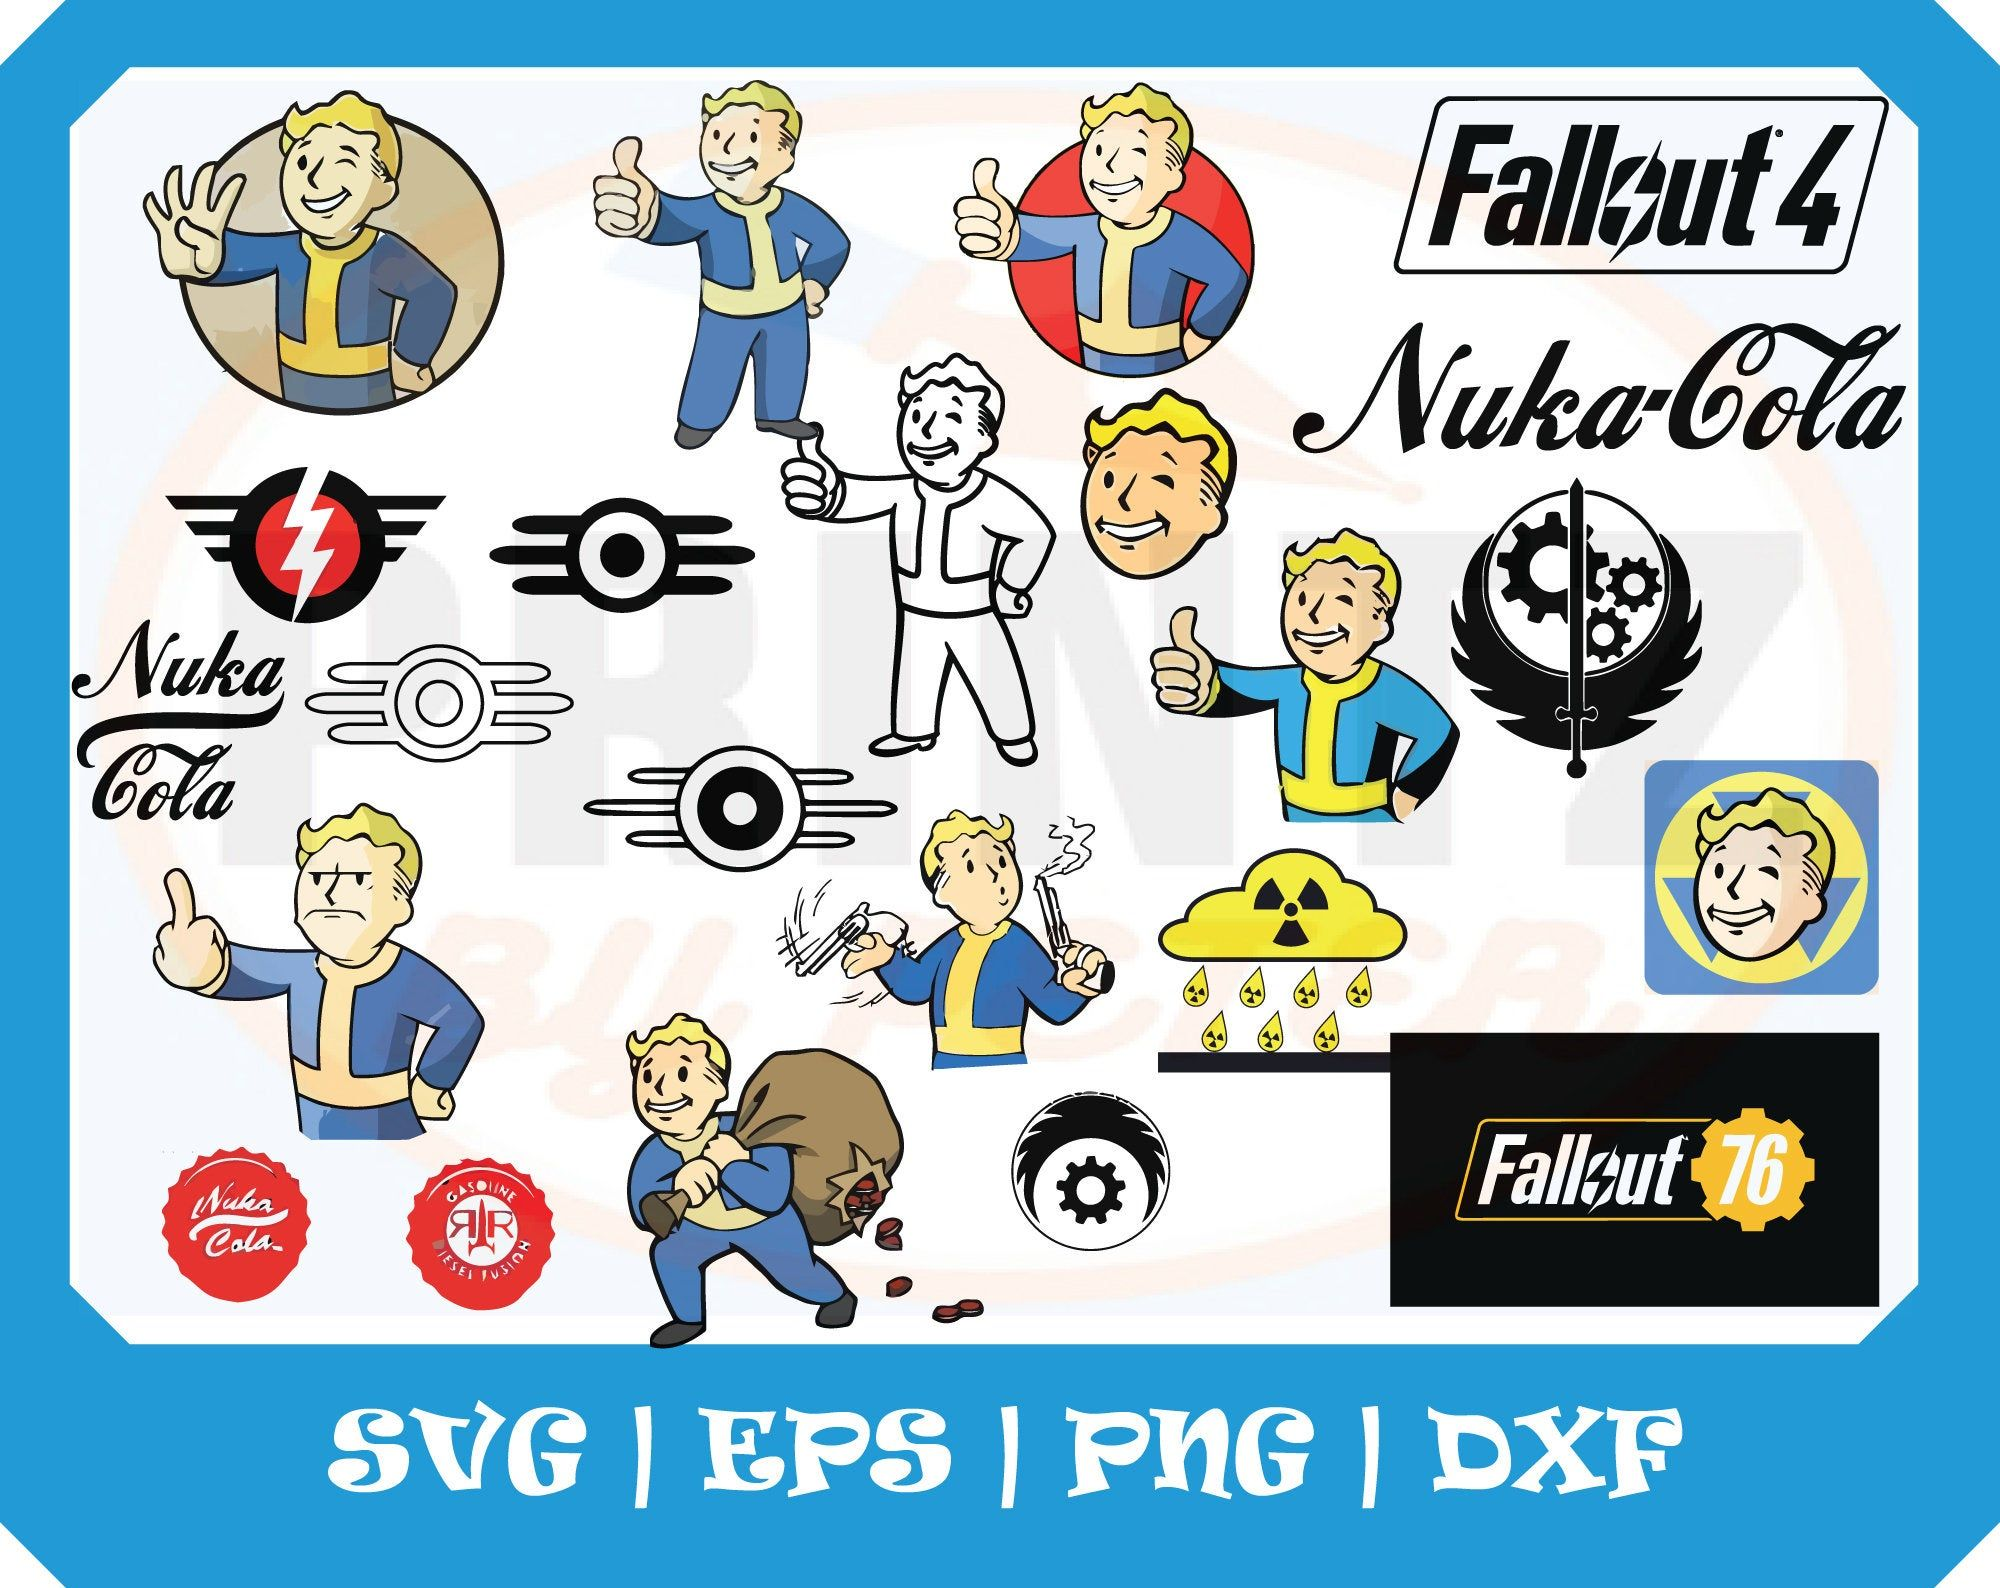 Fallout Svg Vault Boy Nuka Cola For Creating Fallout Cosplay Costume Props Sticker Terrain For Fallout 4 Fallout Cosplay Fallout Posters Fallout New Vegas